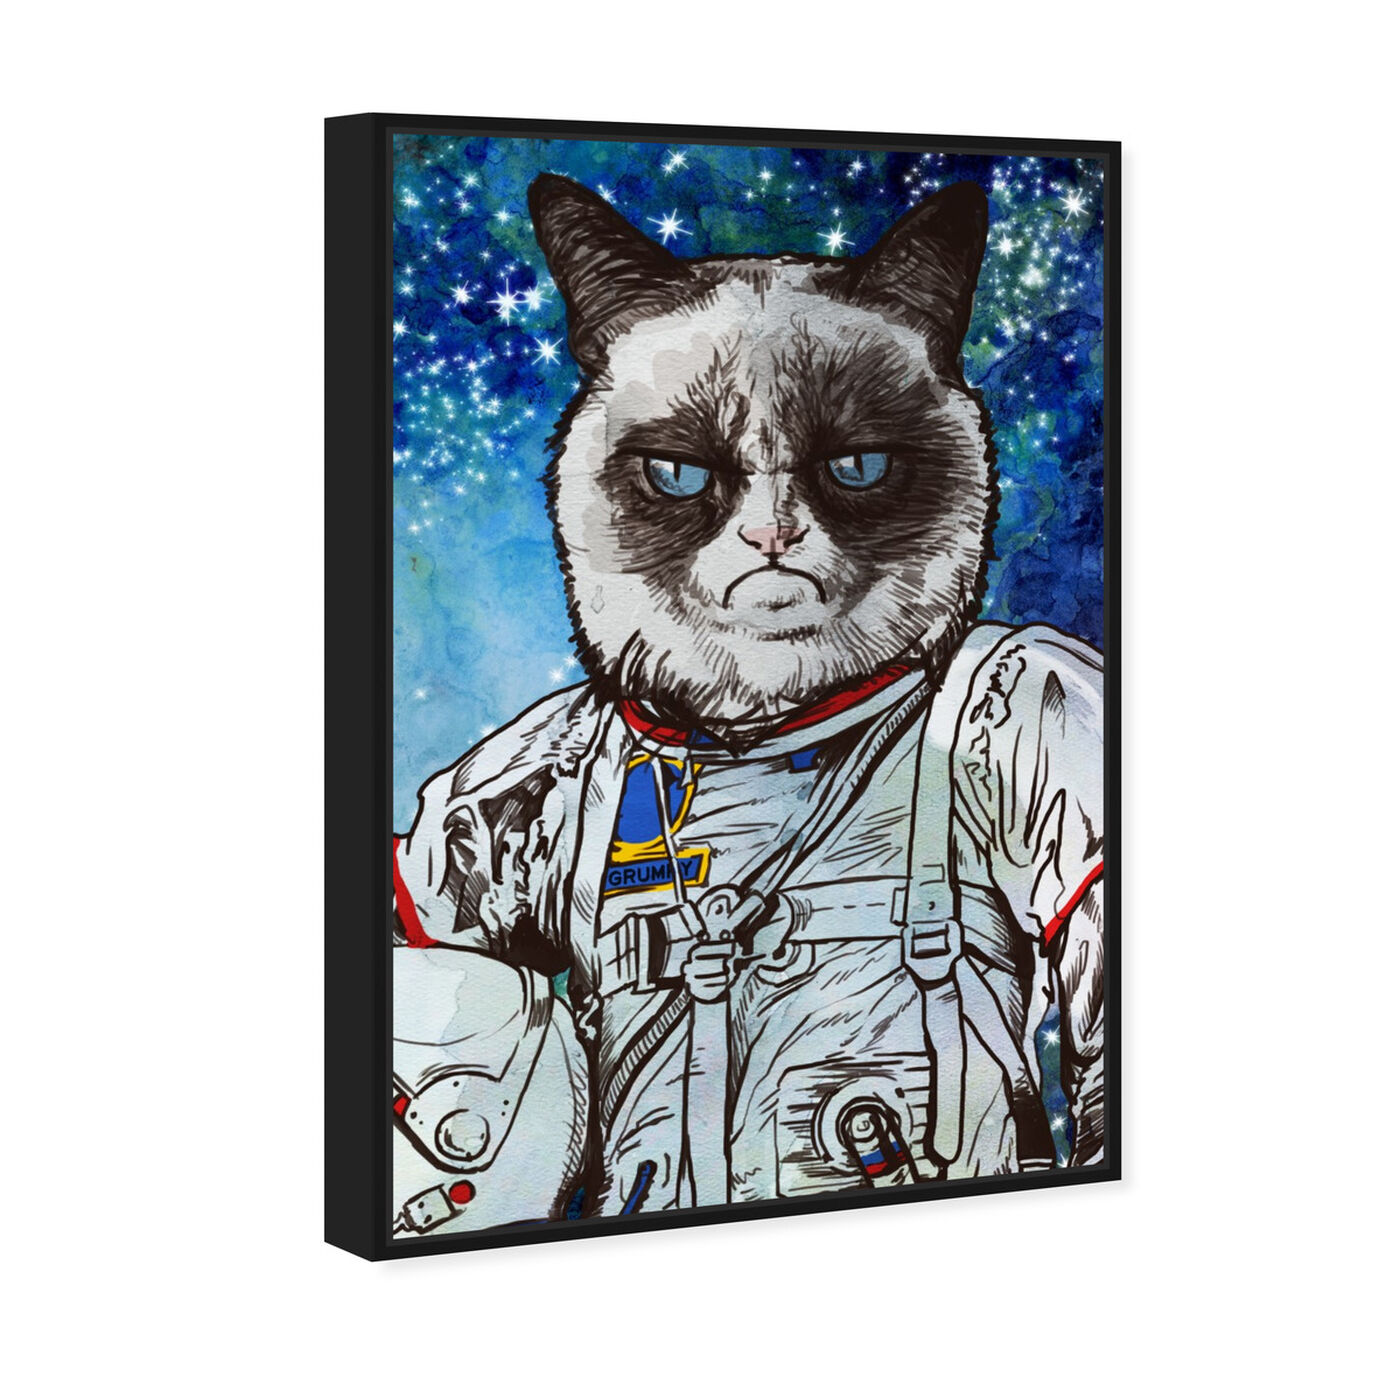 Angled view of Captain Grumpy featuring animals and cats and kitties art.